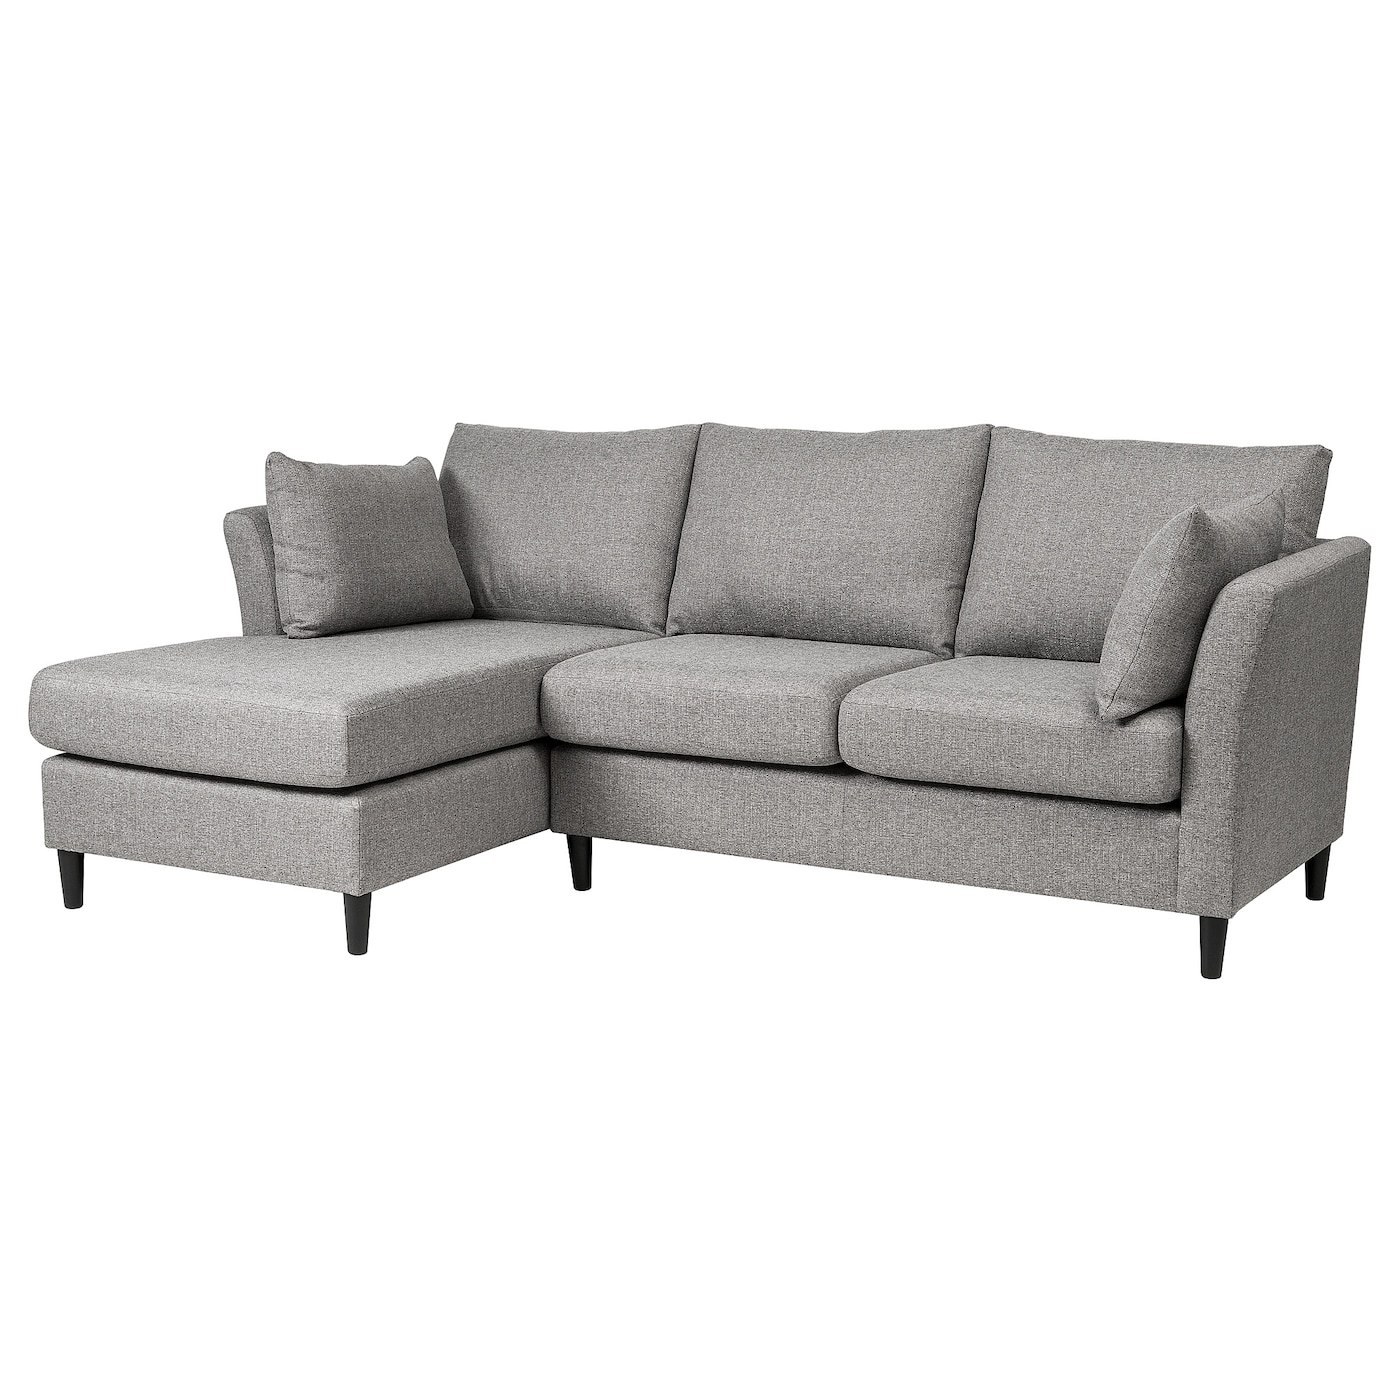 2 seater sofa with chaise sofas 2 3 seater fabric leather for 2 5 seater chaise